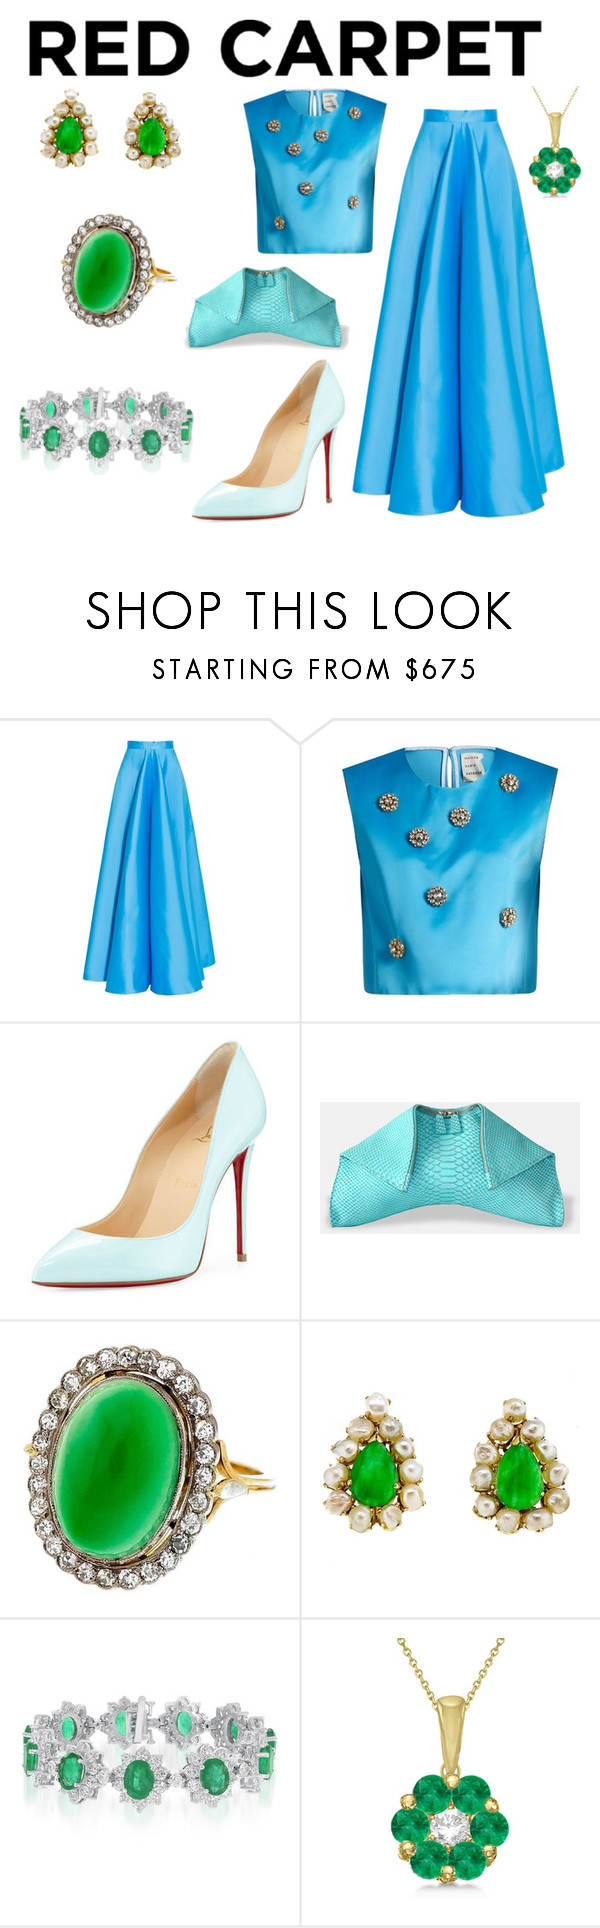 """Untitled #971"" by moestesoh ❤ liked on Polyvore featuring Maison Rabih Kayrouz, Christian Louboutin and Allurez"